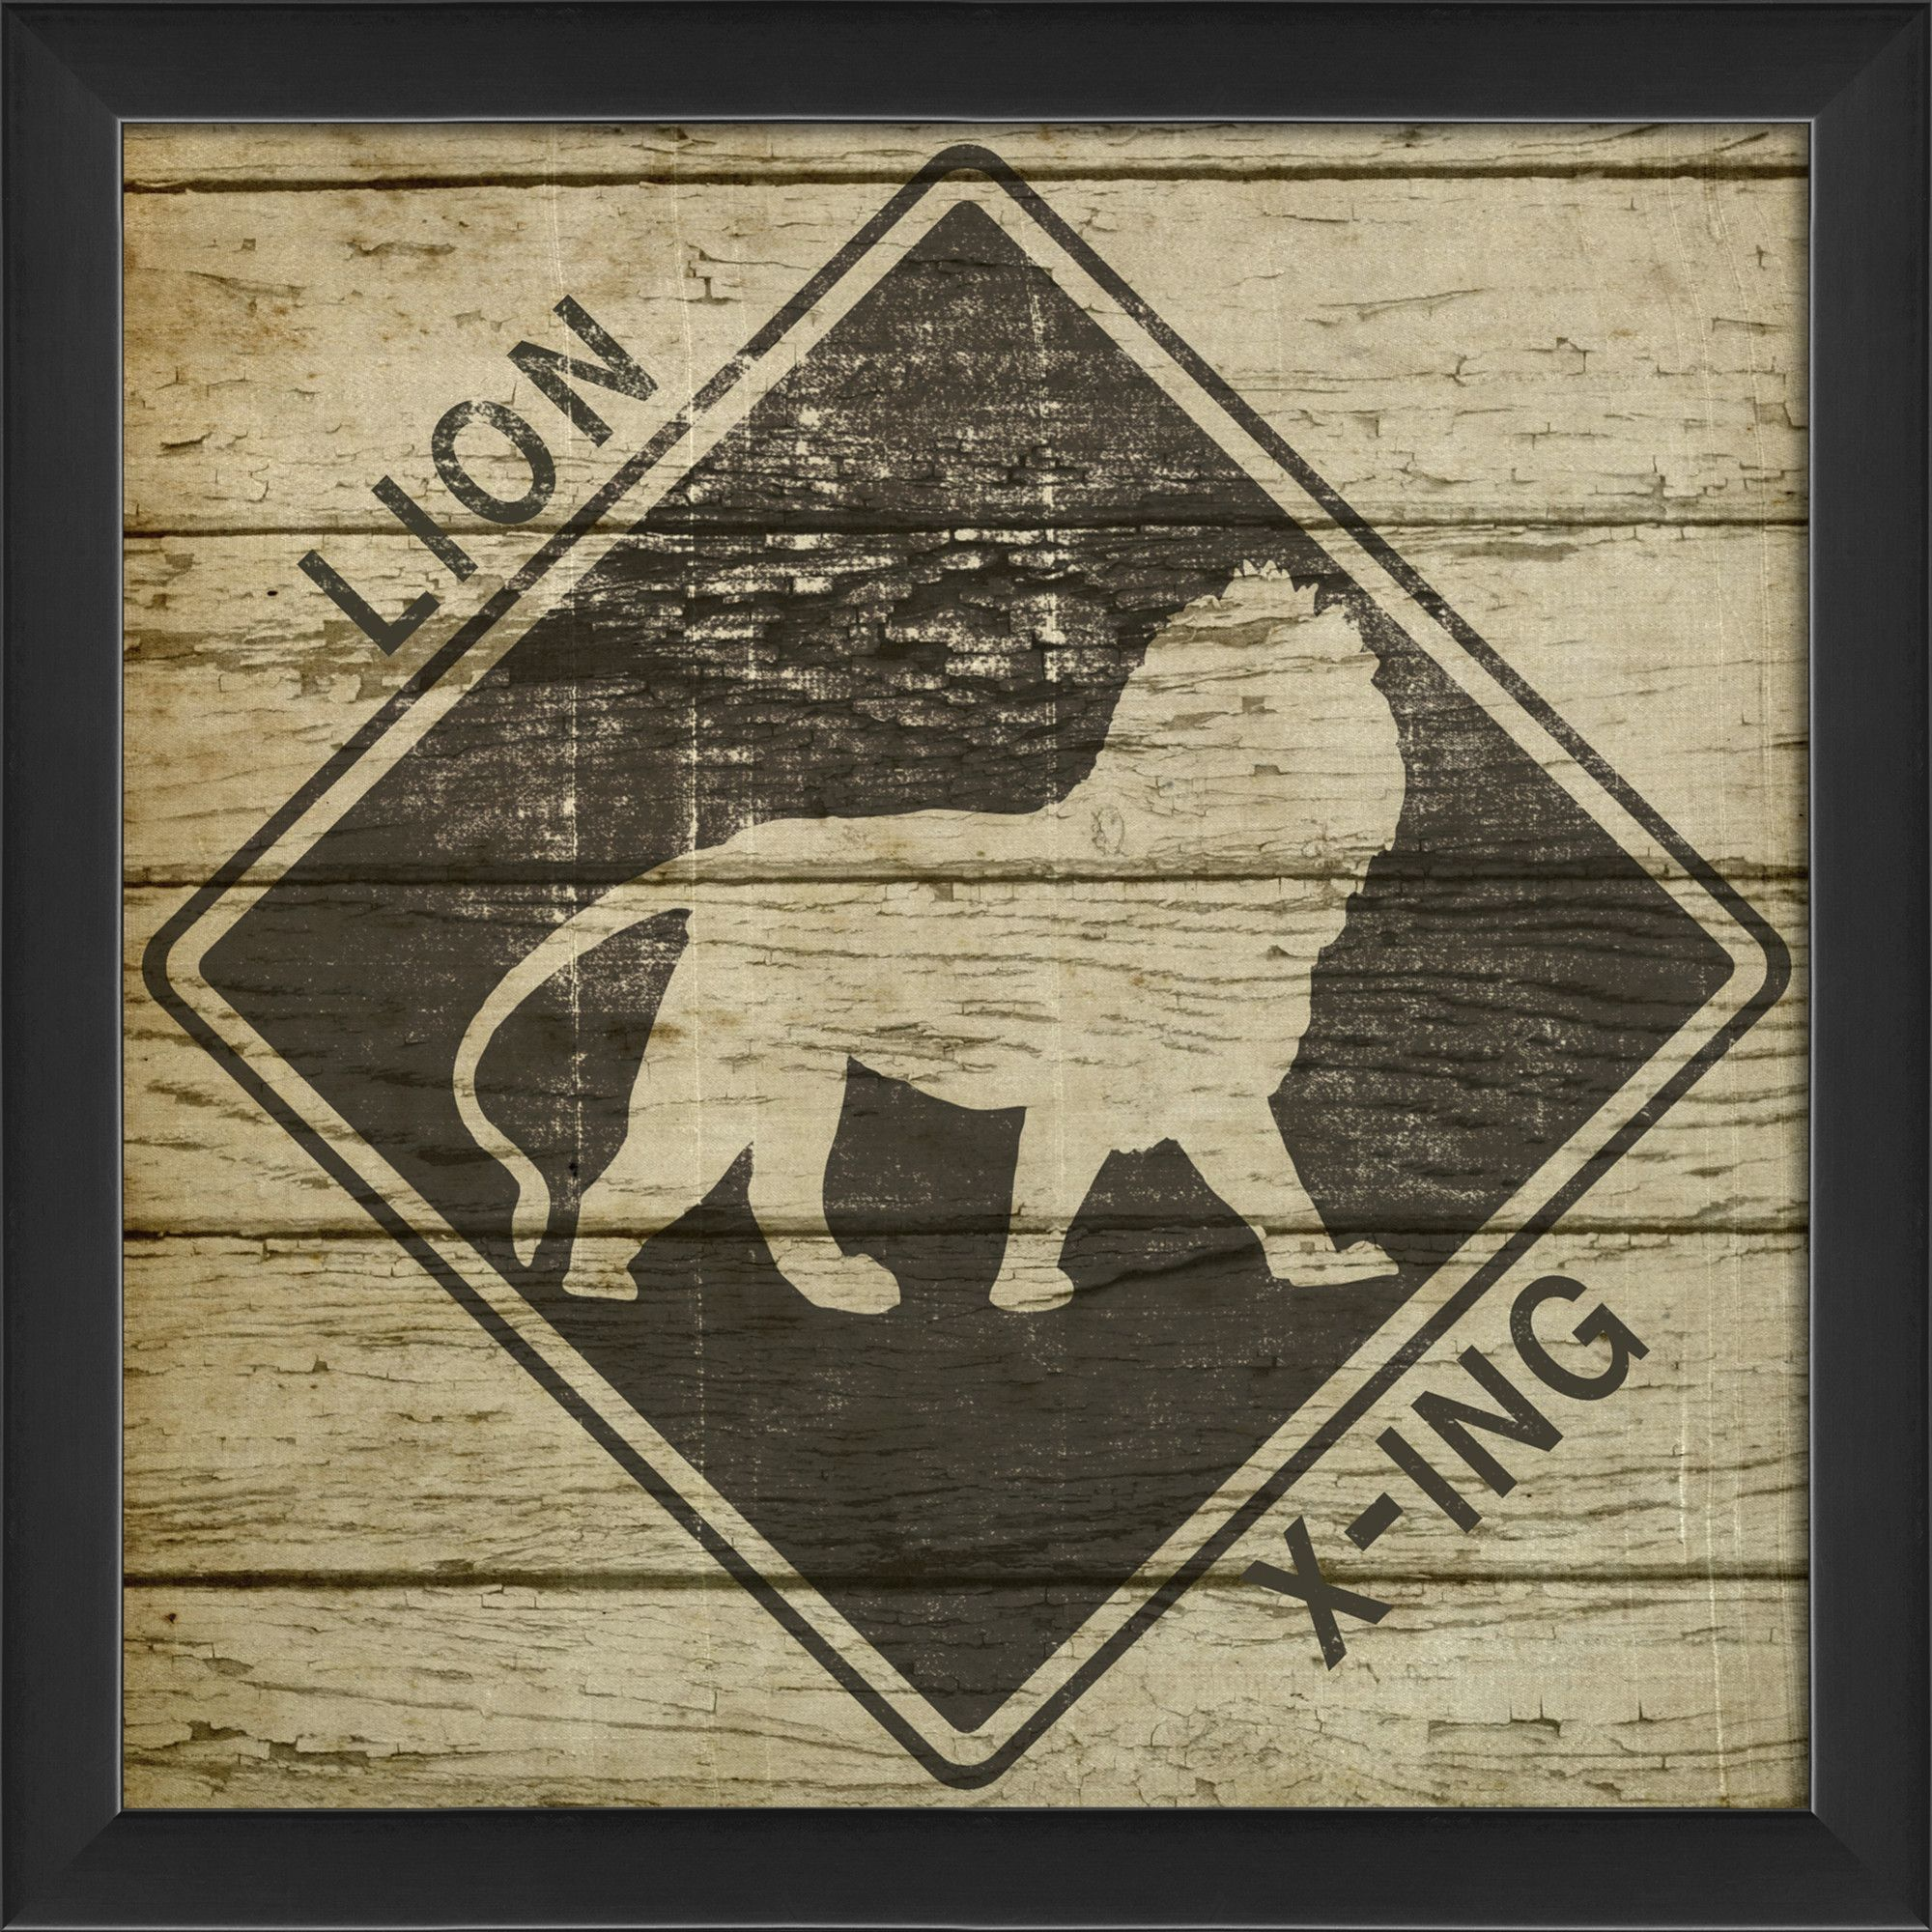 Lion Xing Framed Graphic Art